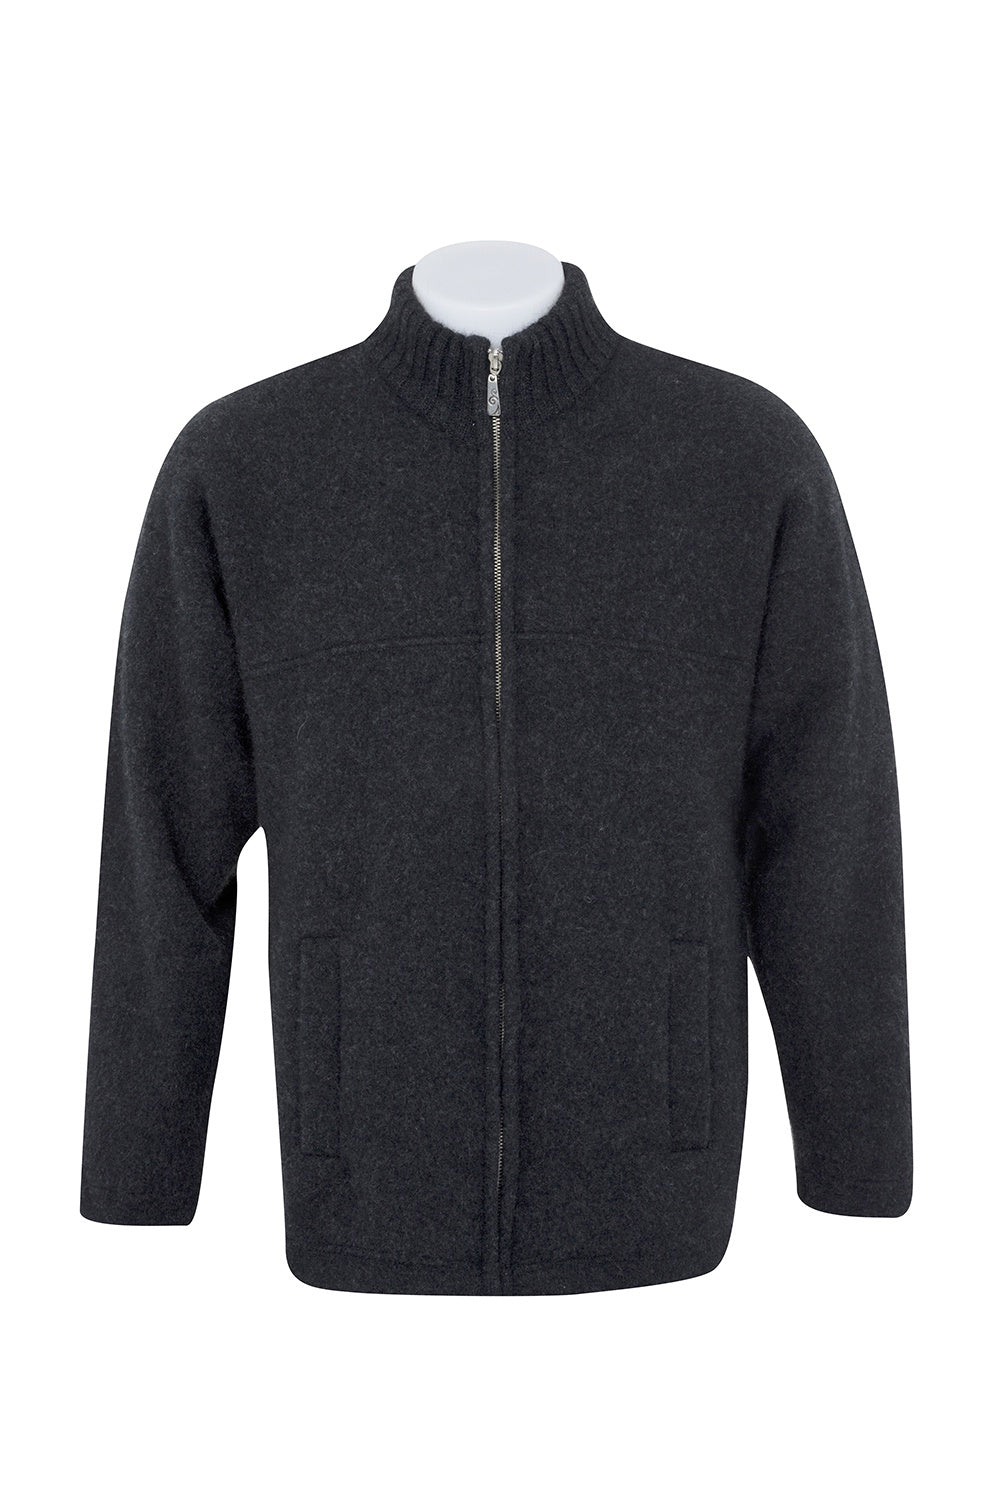 Men's possum felted zip jacket - Ravir Boutique